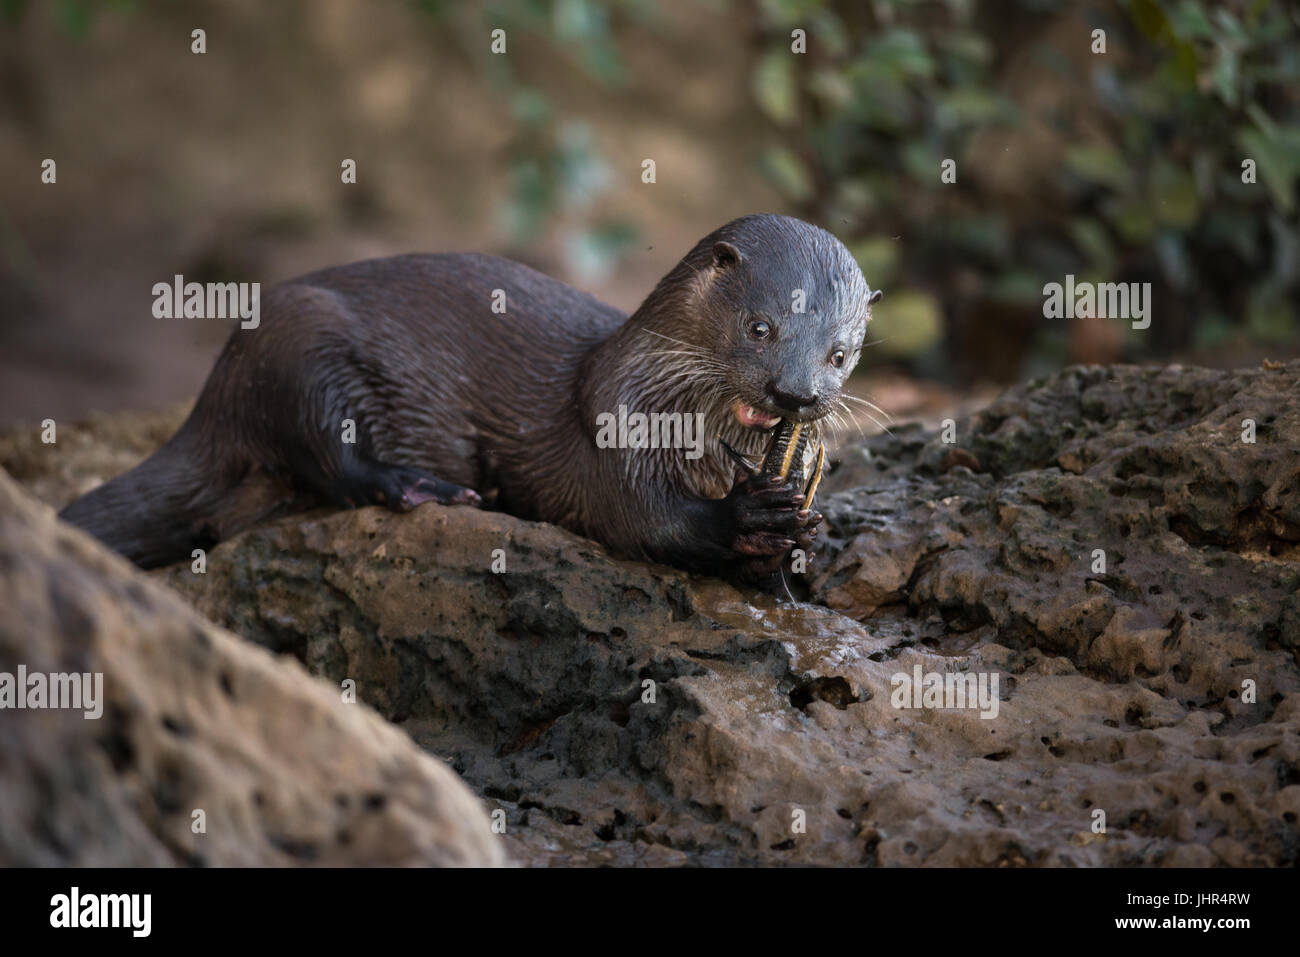 A Neotropical River Otter eating a fish Stock Photo